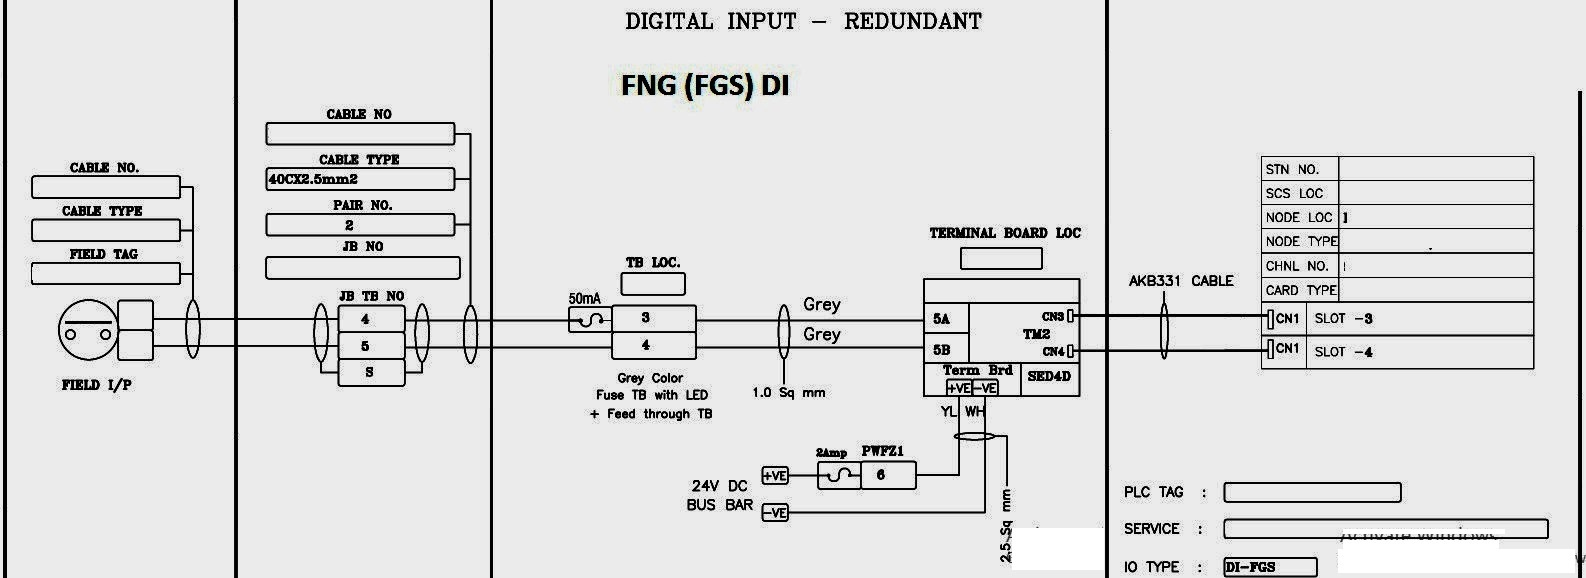 fng di?w=742&h=270 instrument loop diagrams kishore karuppaswamy